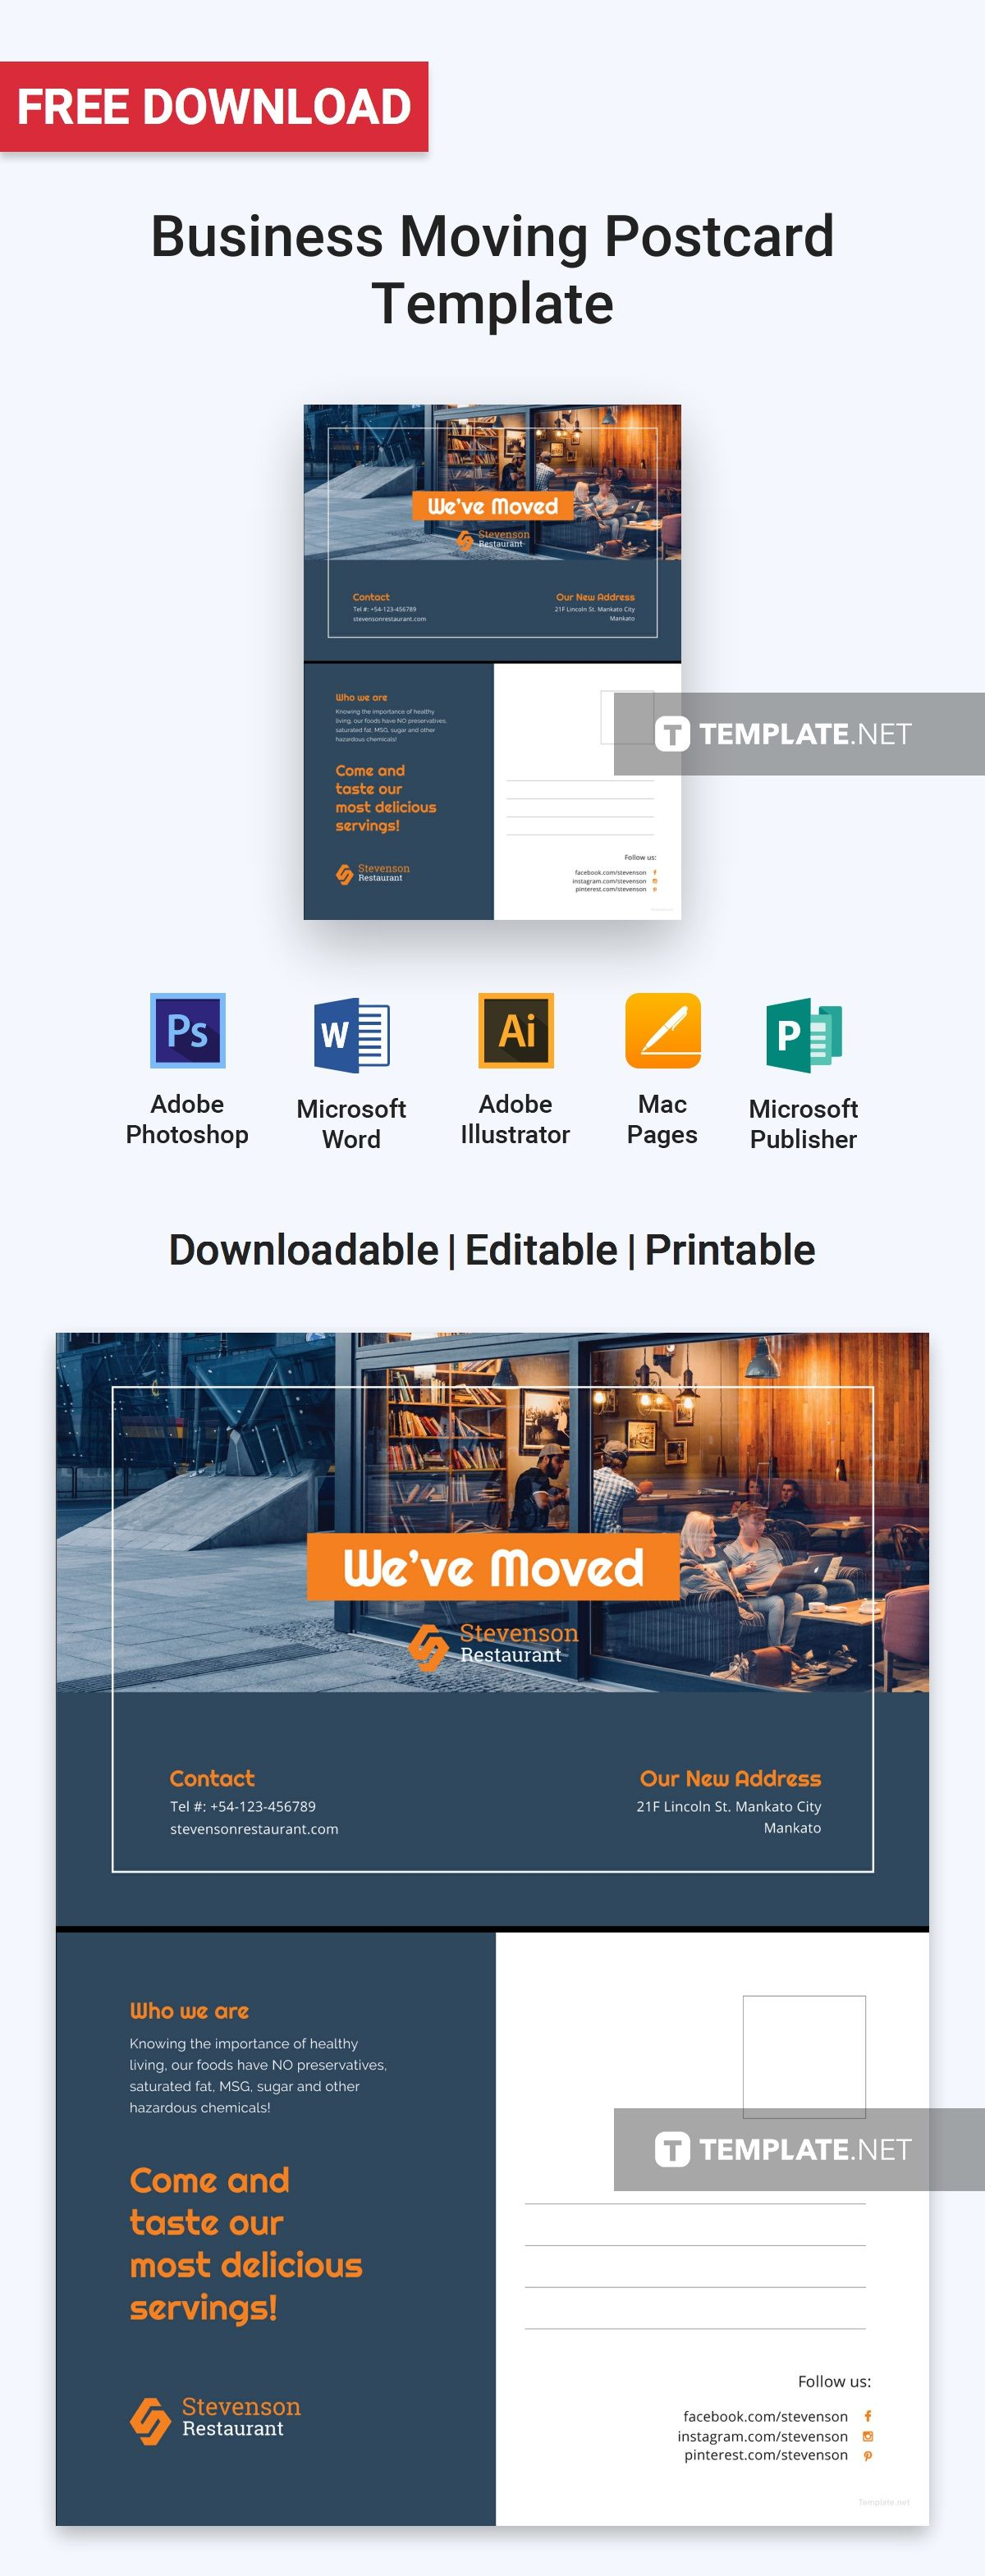 Download Business Moving Postcard Template For Personal Amp Use Professionally Designed Free Templates